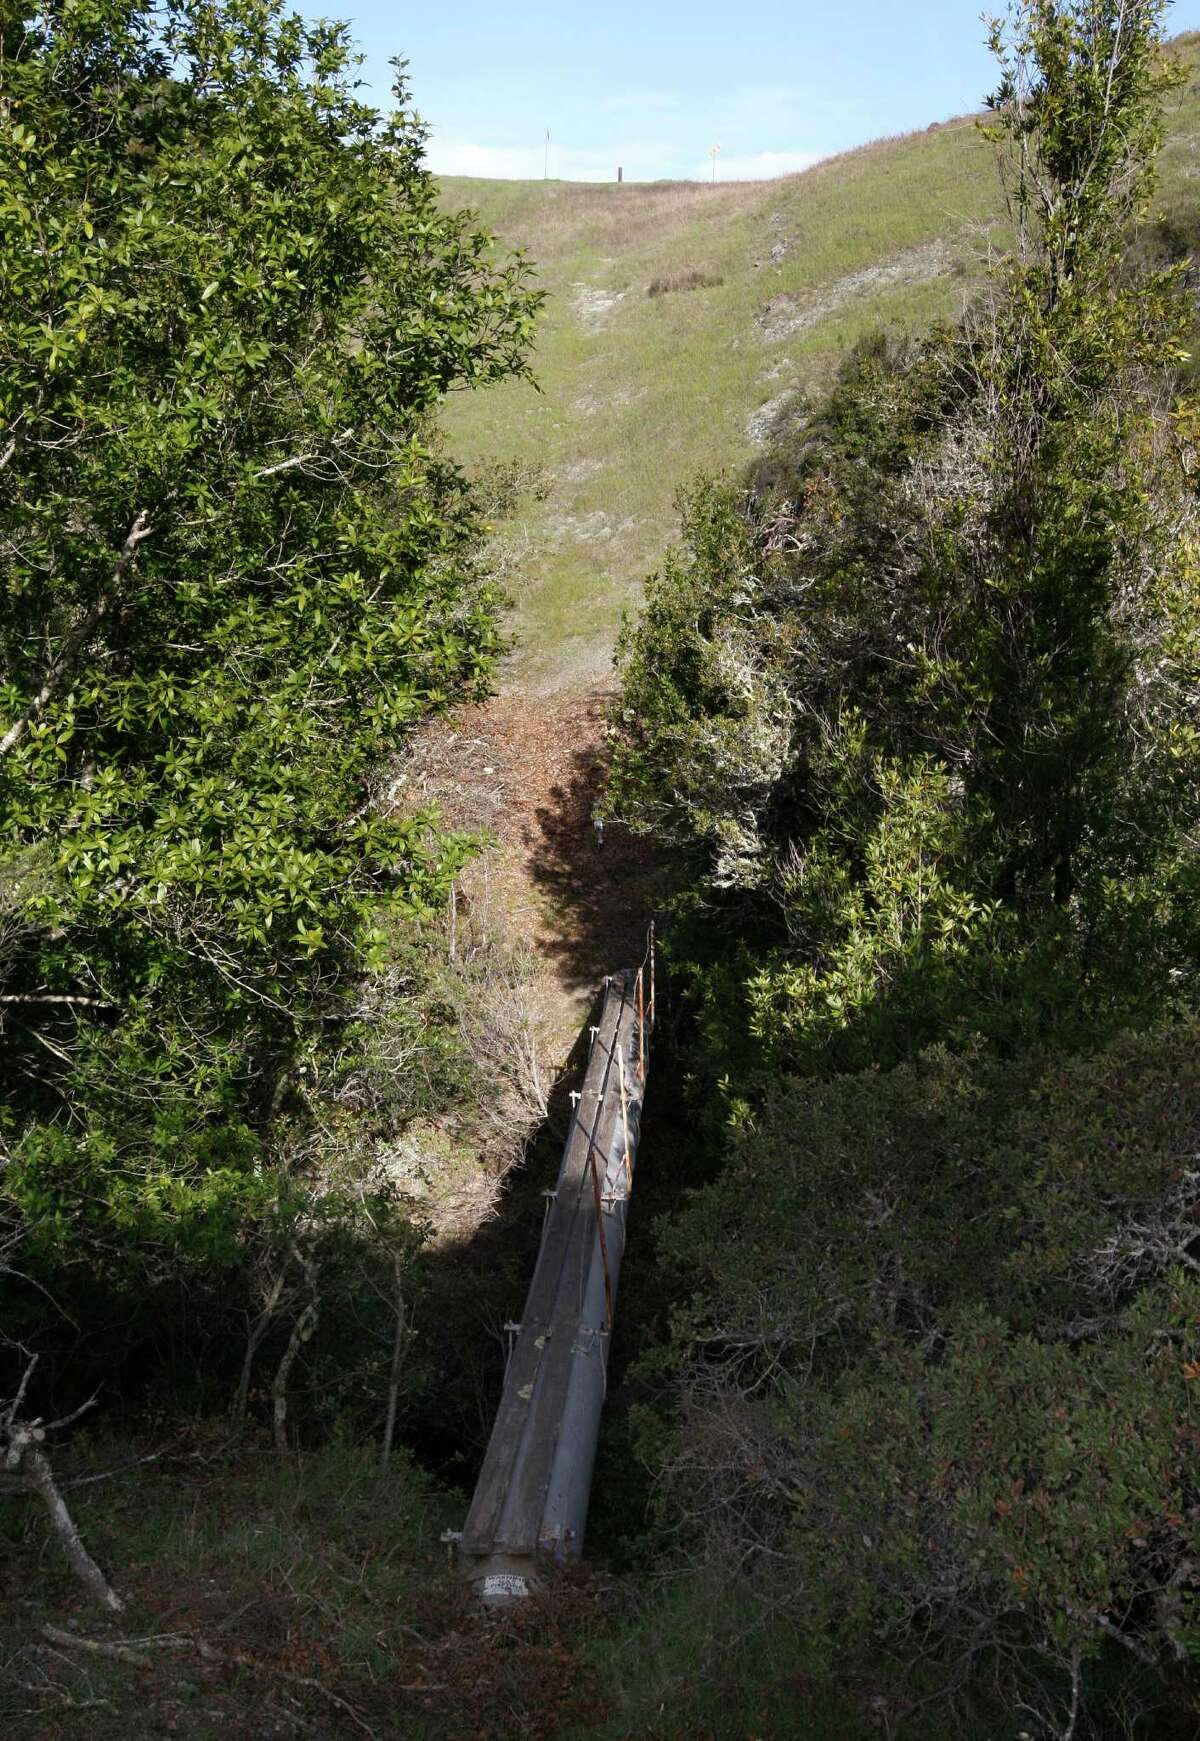 An exposed section of PG&E pipeline on the Peninsula.